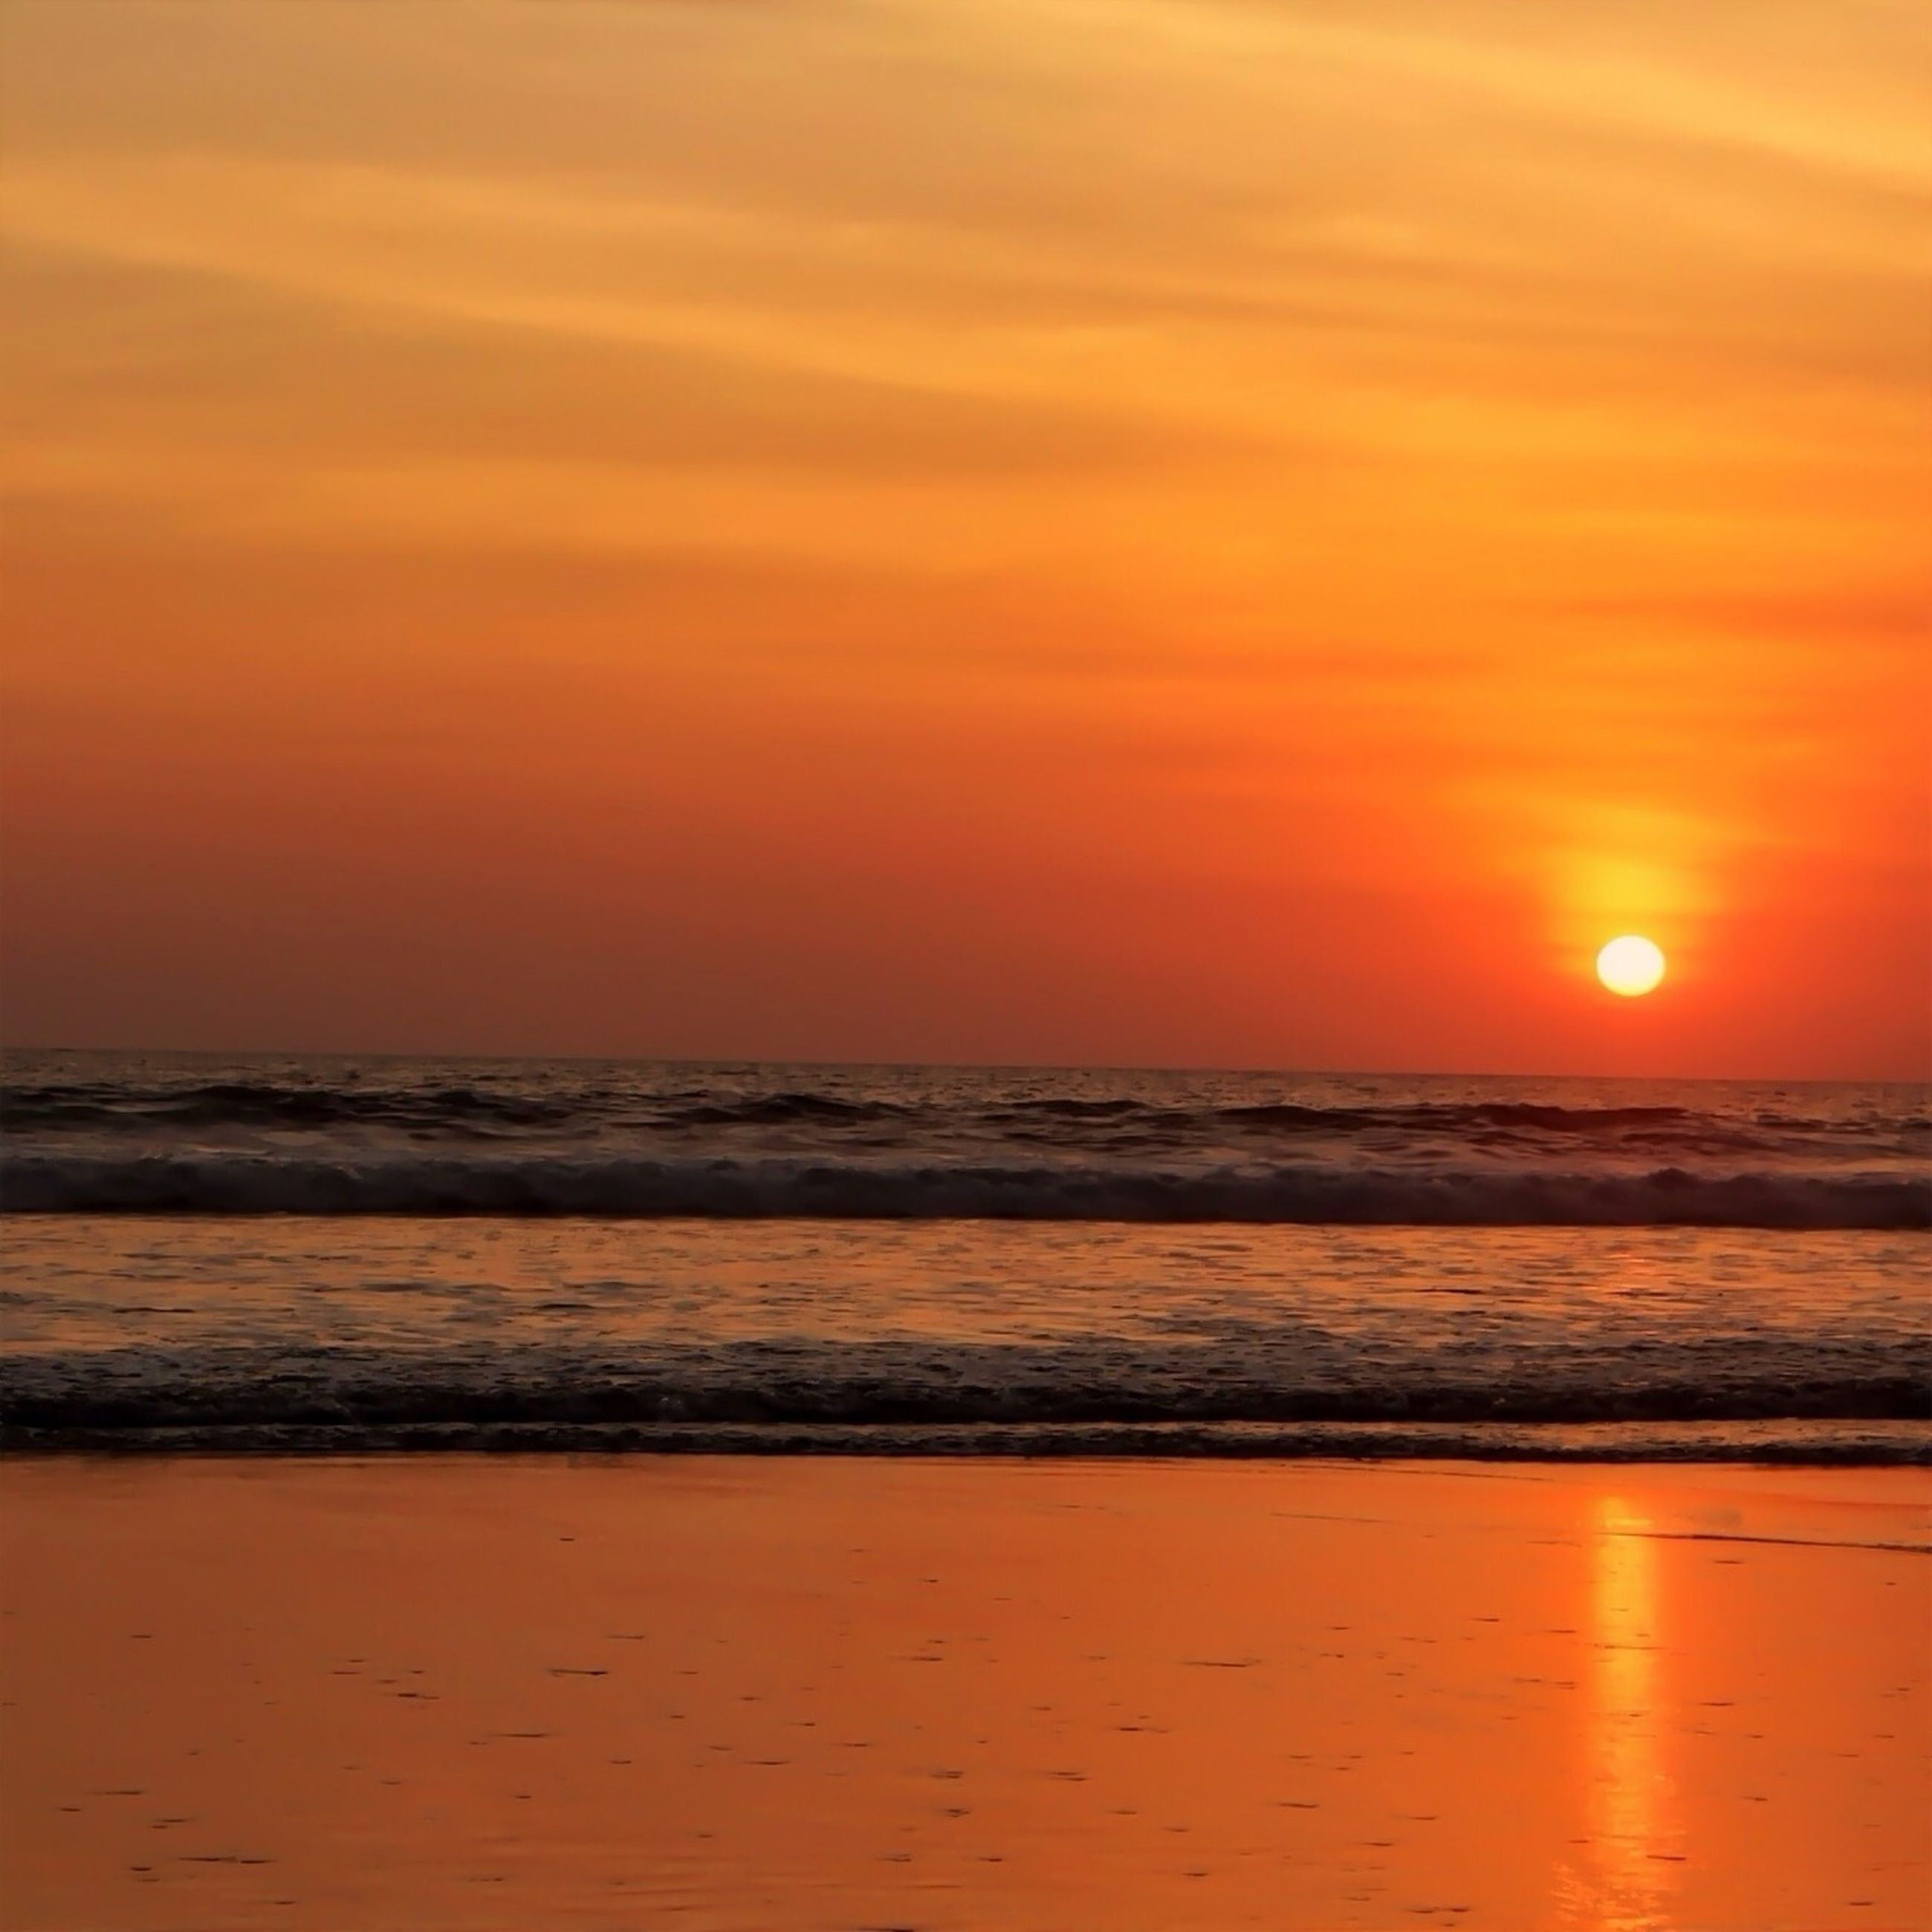 sunset, sea, horizon over water, water, orange color, beach, scenics, beauty in nature, tranquil scene, tranquility, sun, shore, sky, idyllic, nature, wave, reflection, outdoors, remote, sand